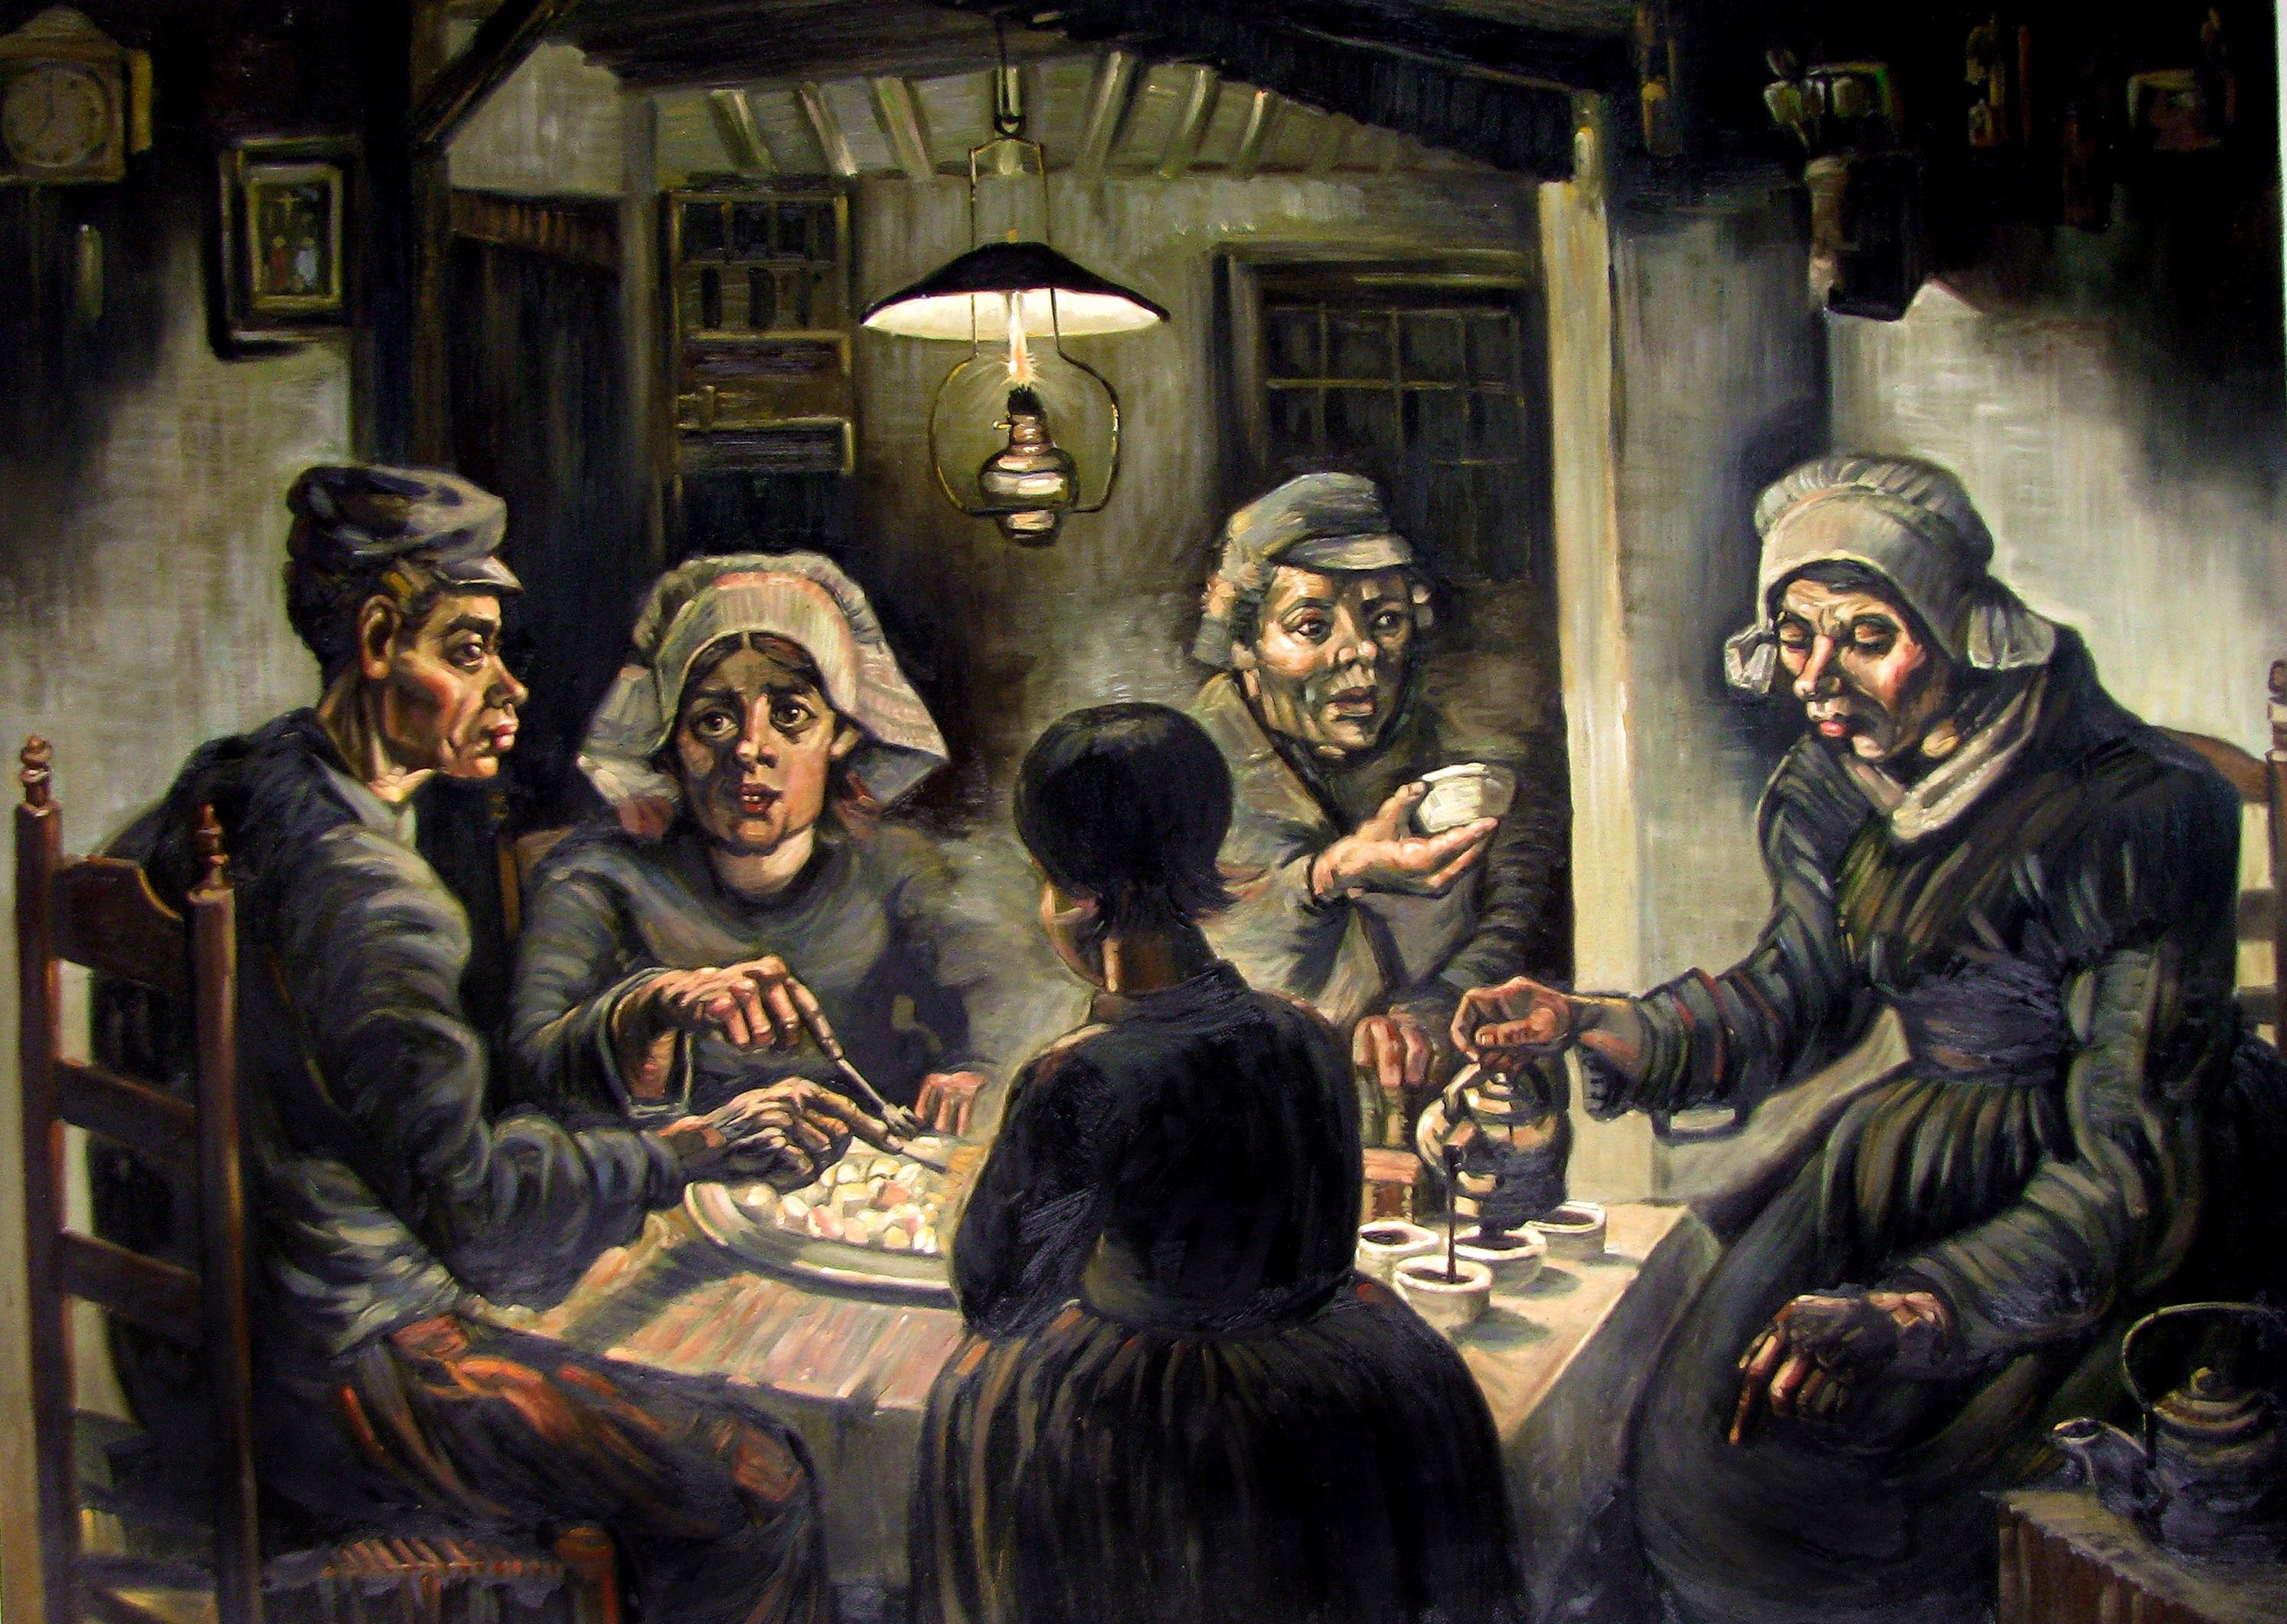 the-potato-eaters-vincent-van-gogh-big.JPG 2,981×2,117 pixels ...